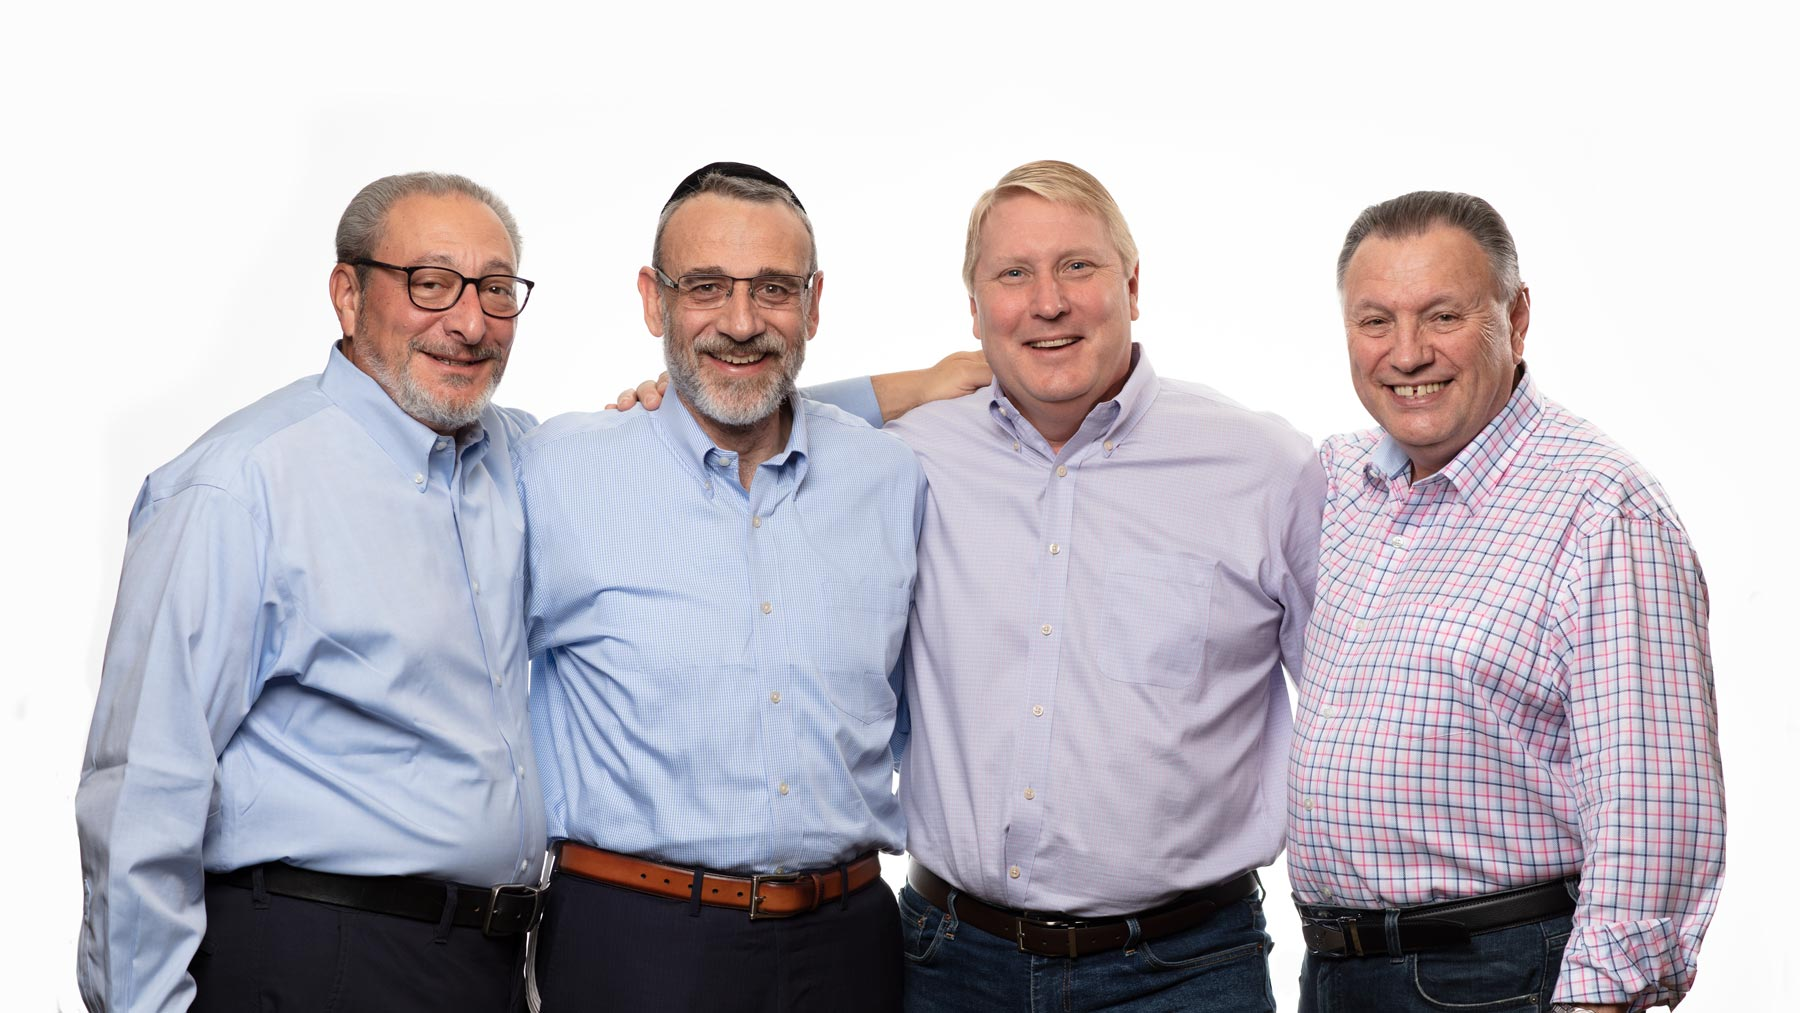 Image of Xeragenx Leadership together. Left to Right. Eric Moyerman, Jonathan Bortz, Joe Briner, and Brian Jenner.